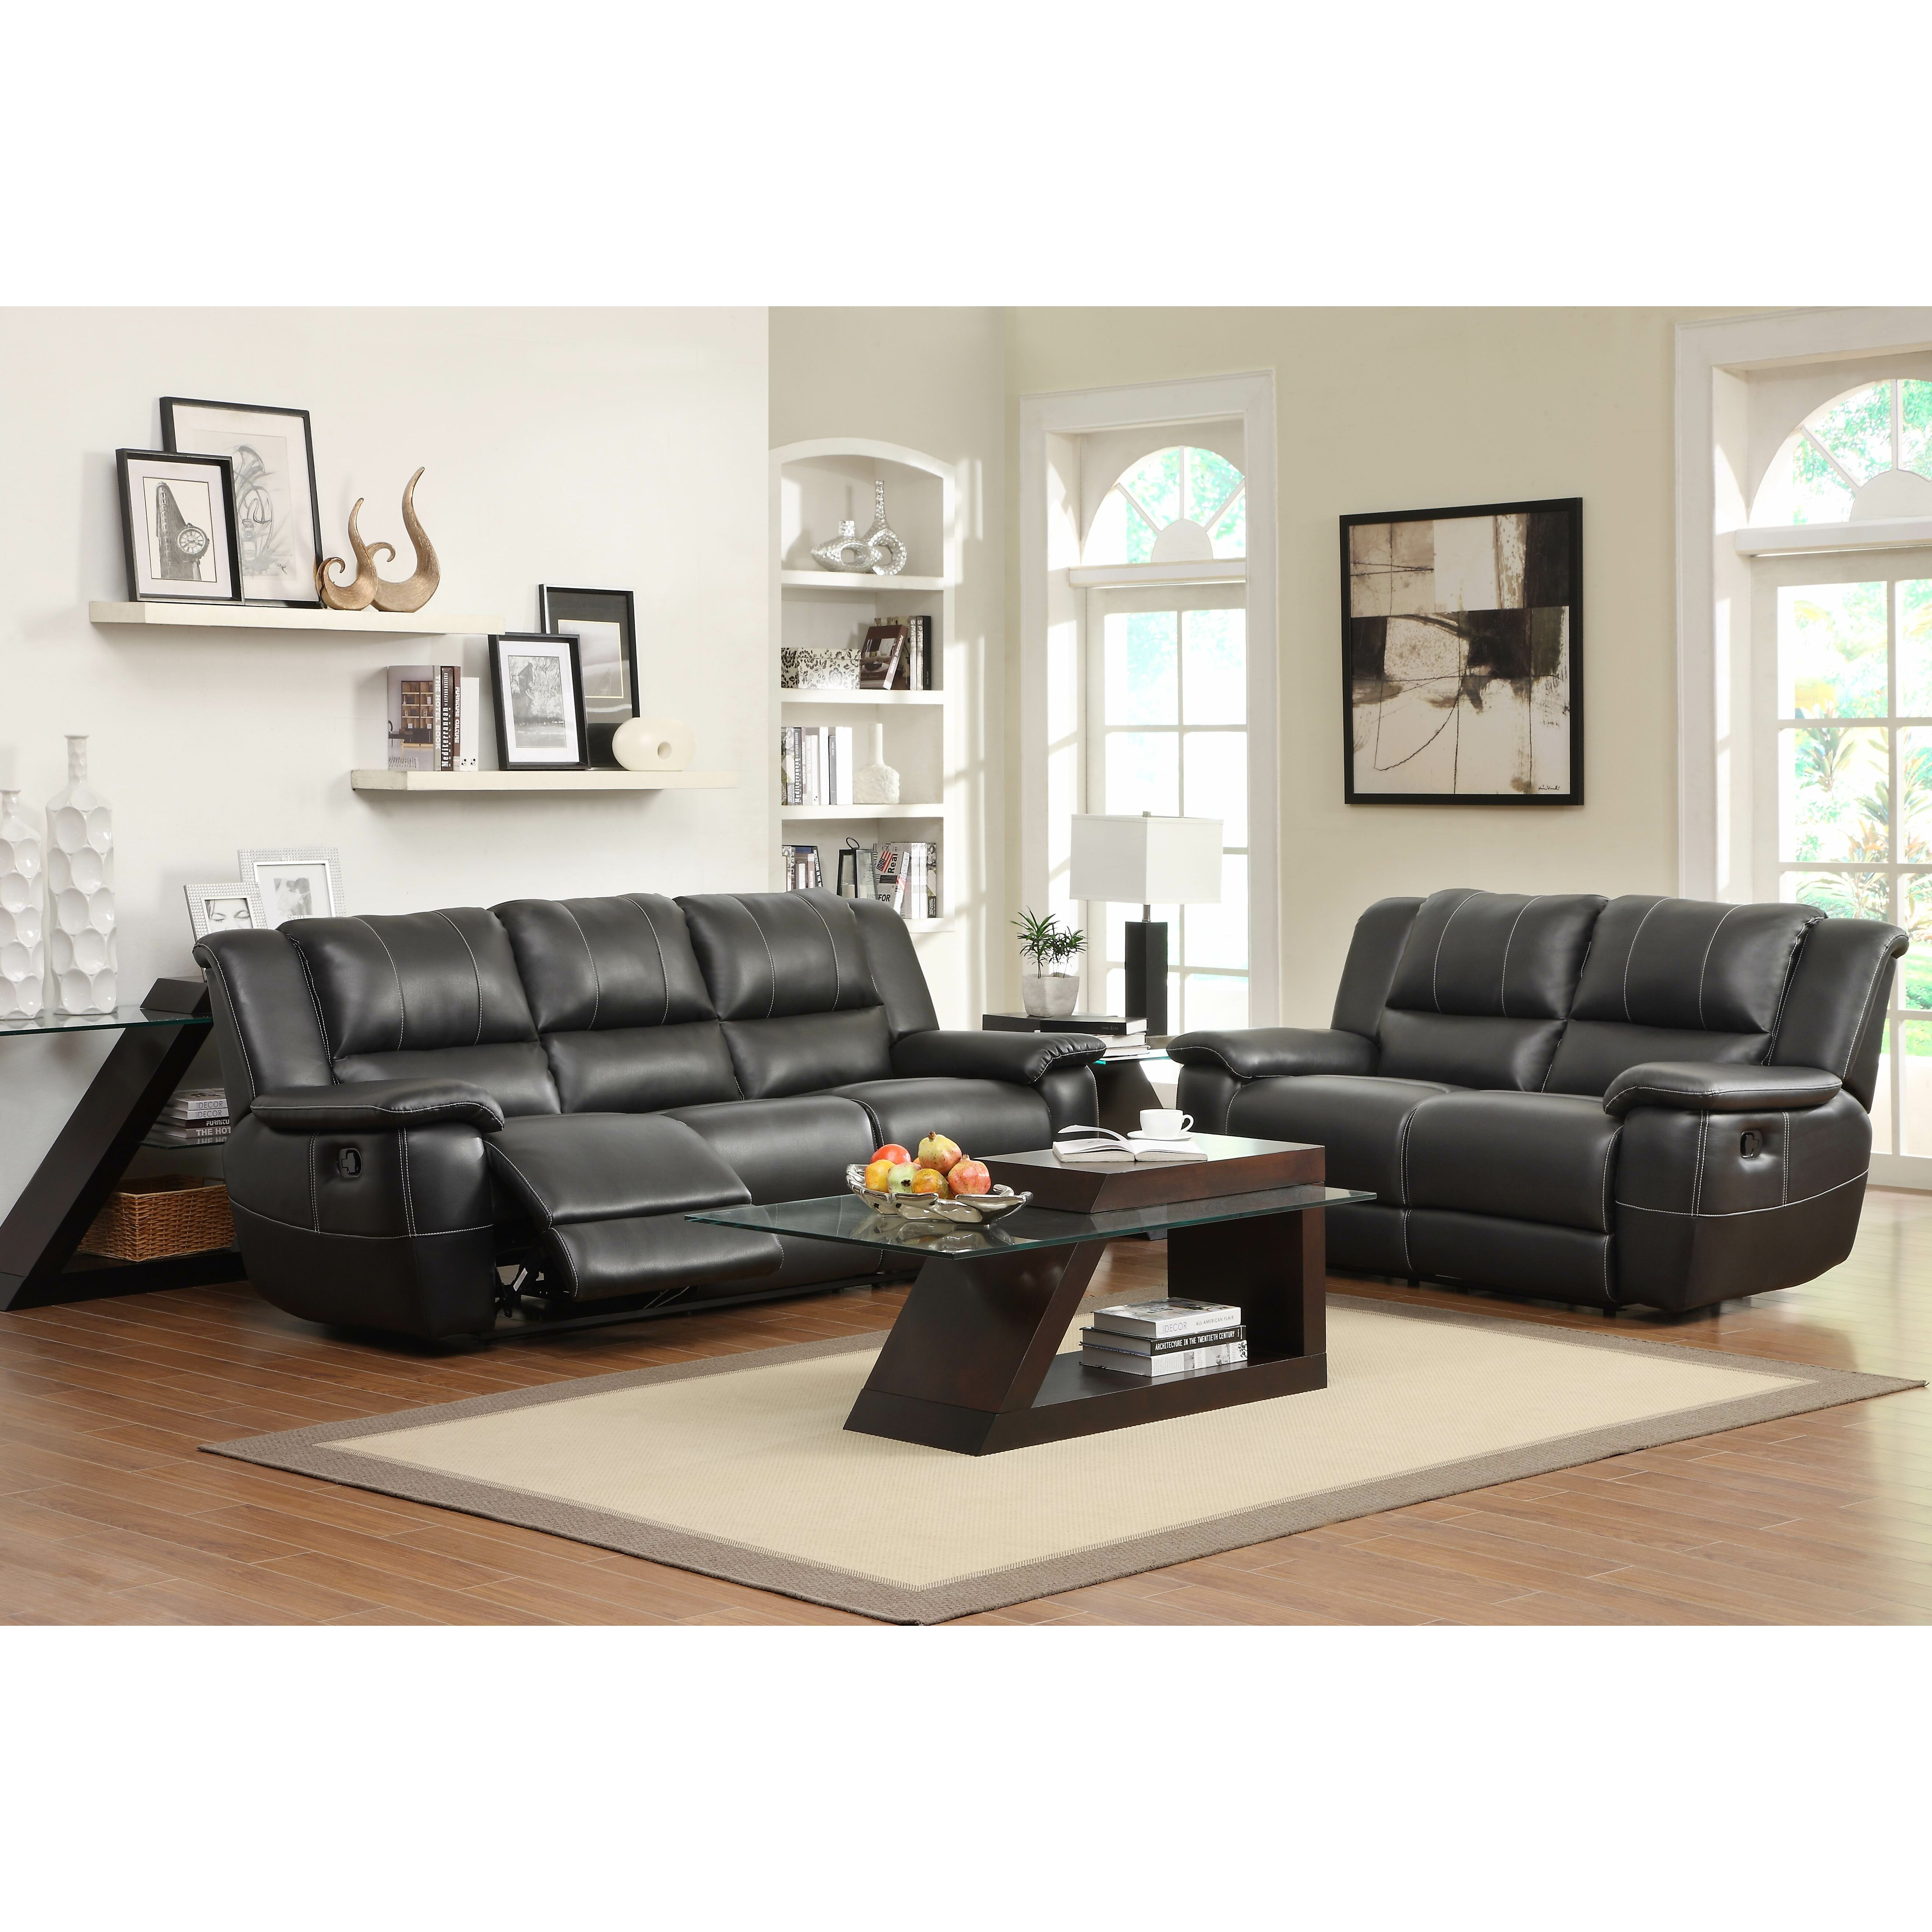 Woodbridge Home Designs Furniture Woodhaven Hill Cantrell Double Reclining Sofa Amp Reviews